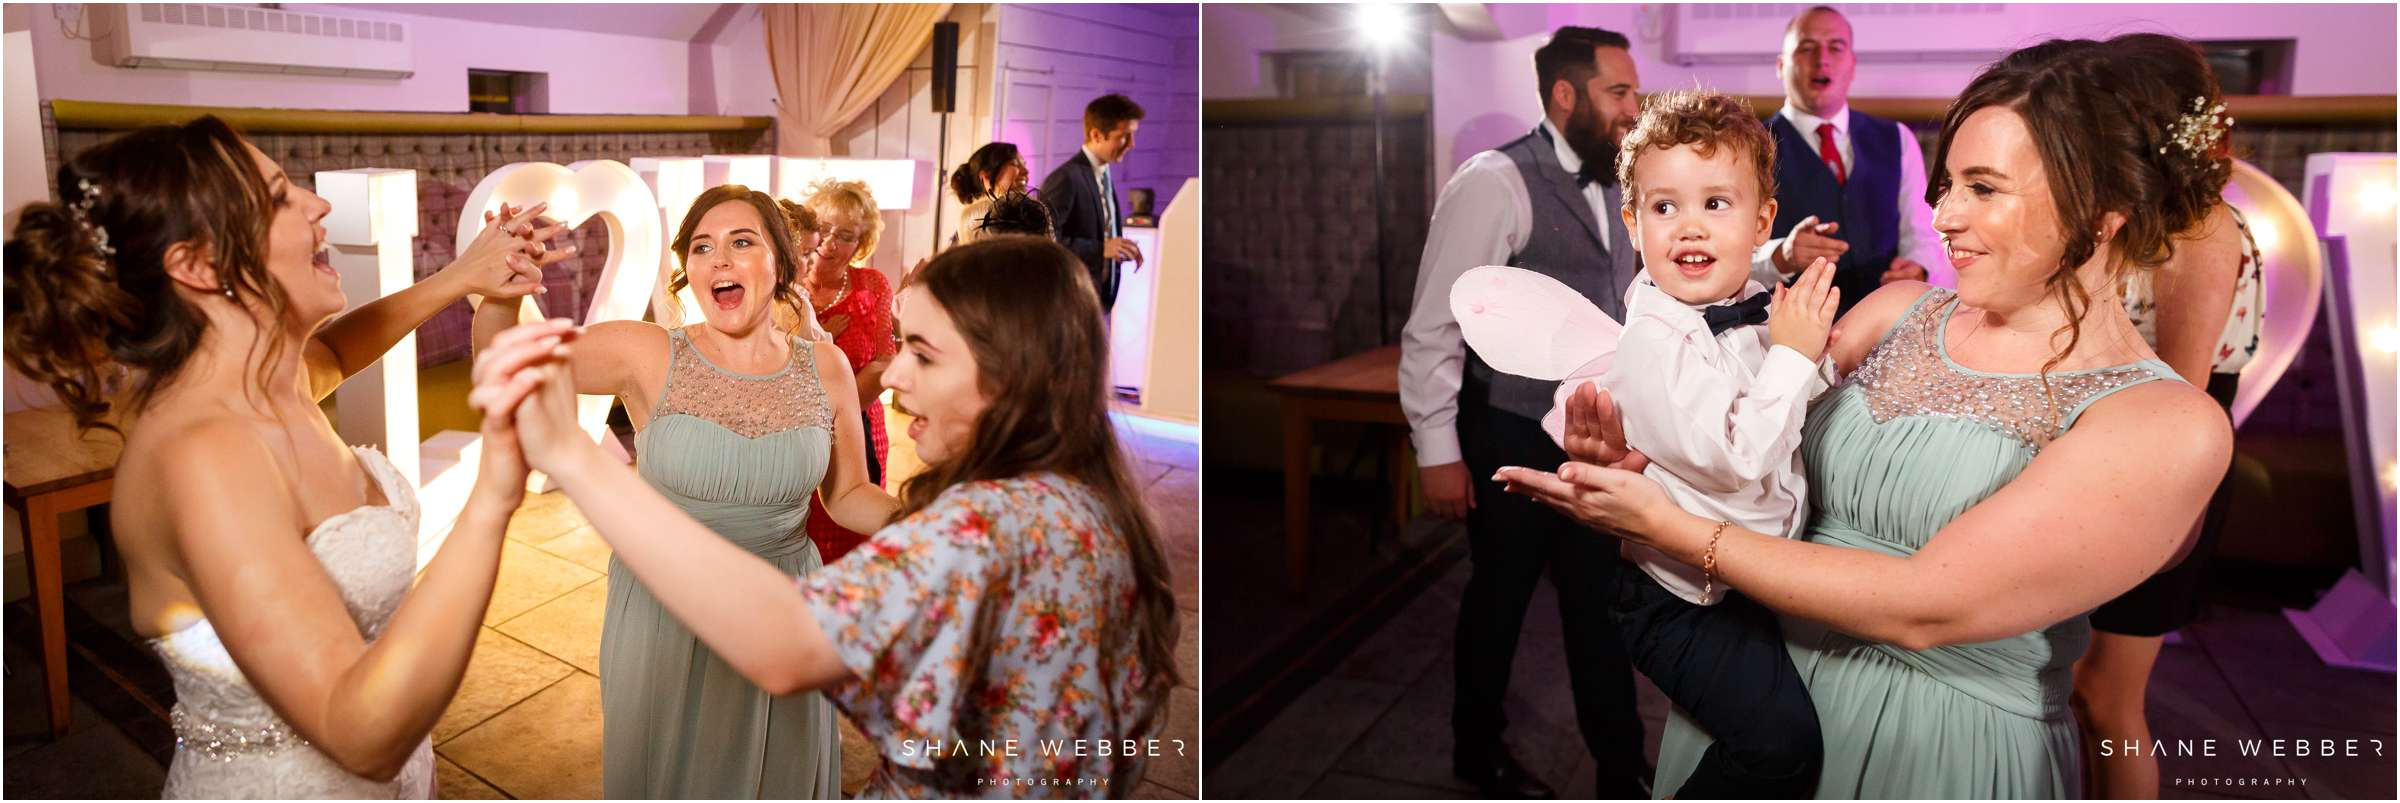 party wedding pictures